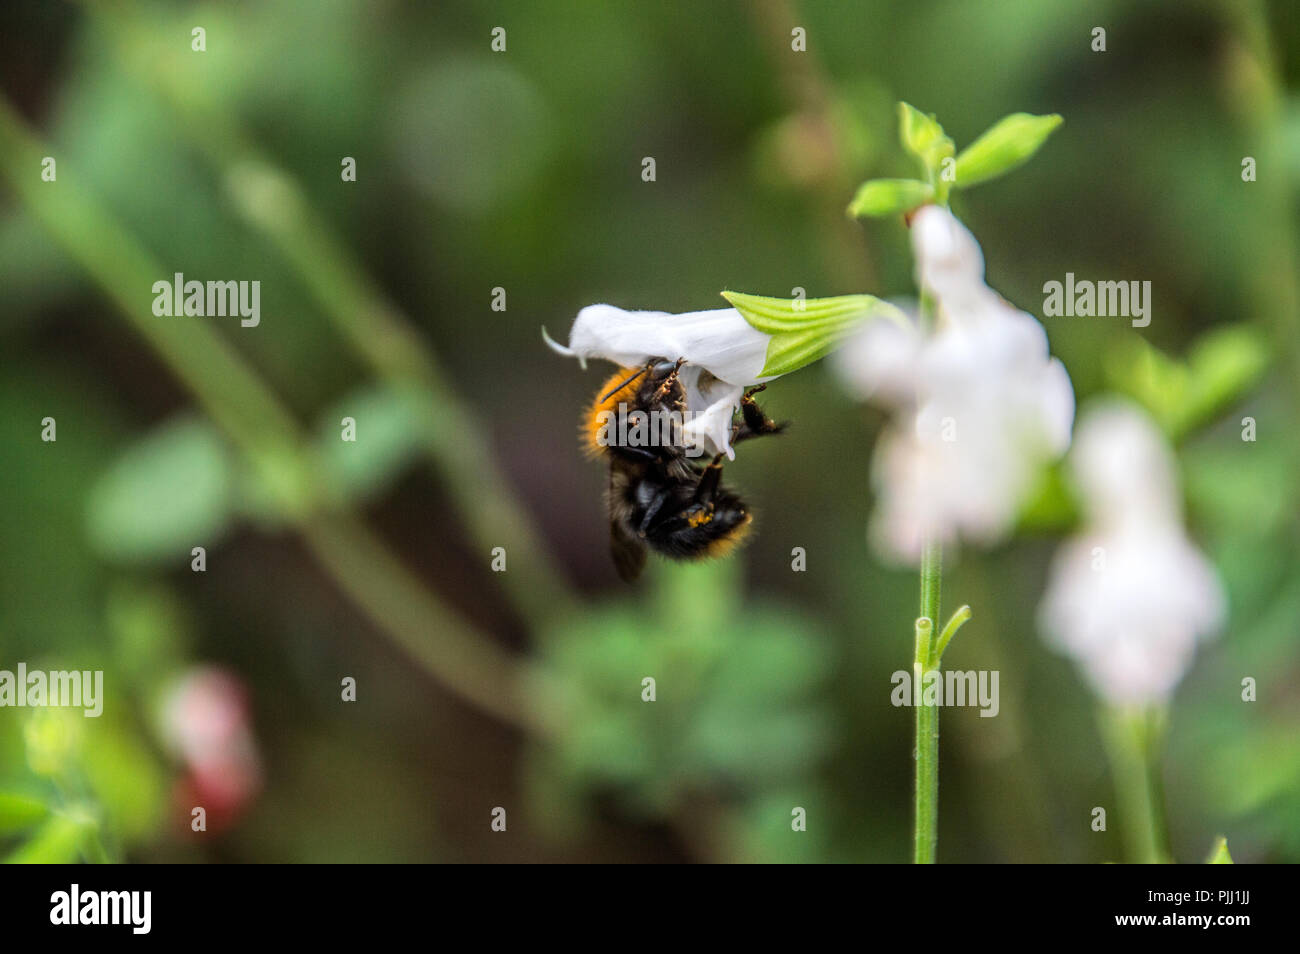 Bumble Bee At A Flower - Stock Image